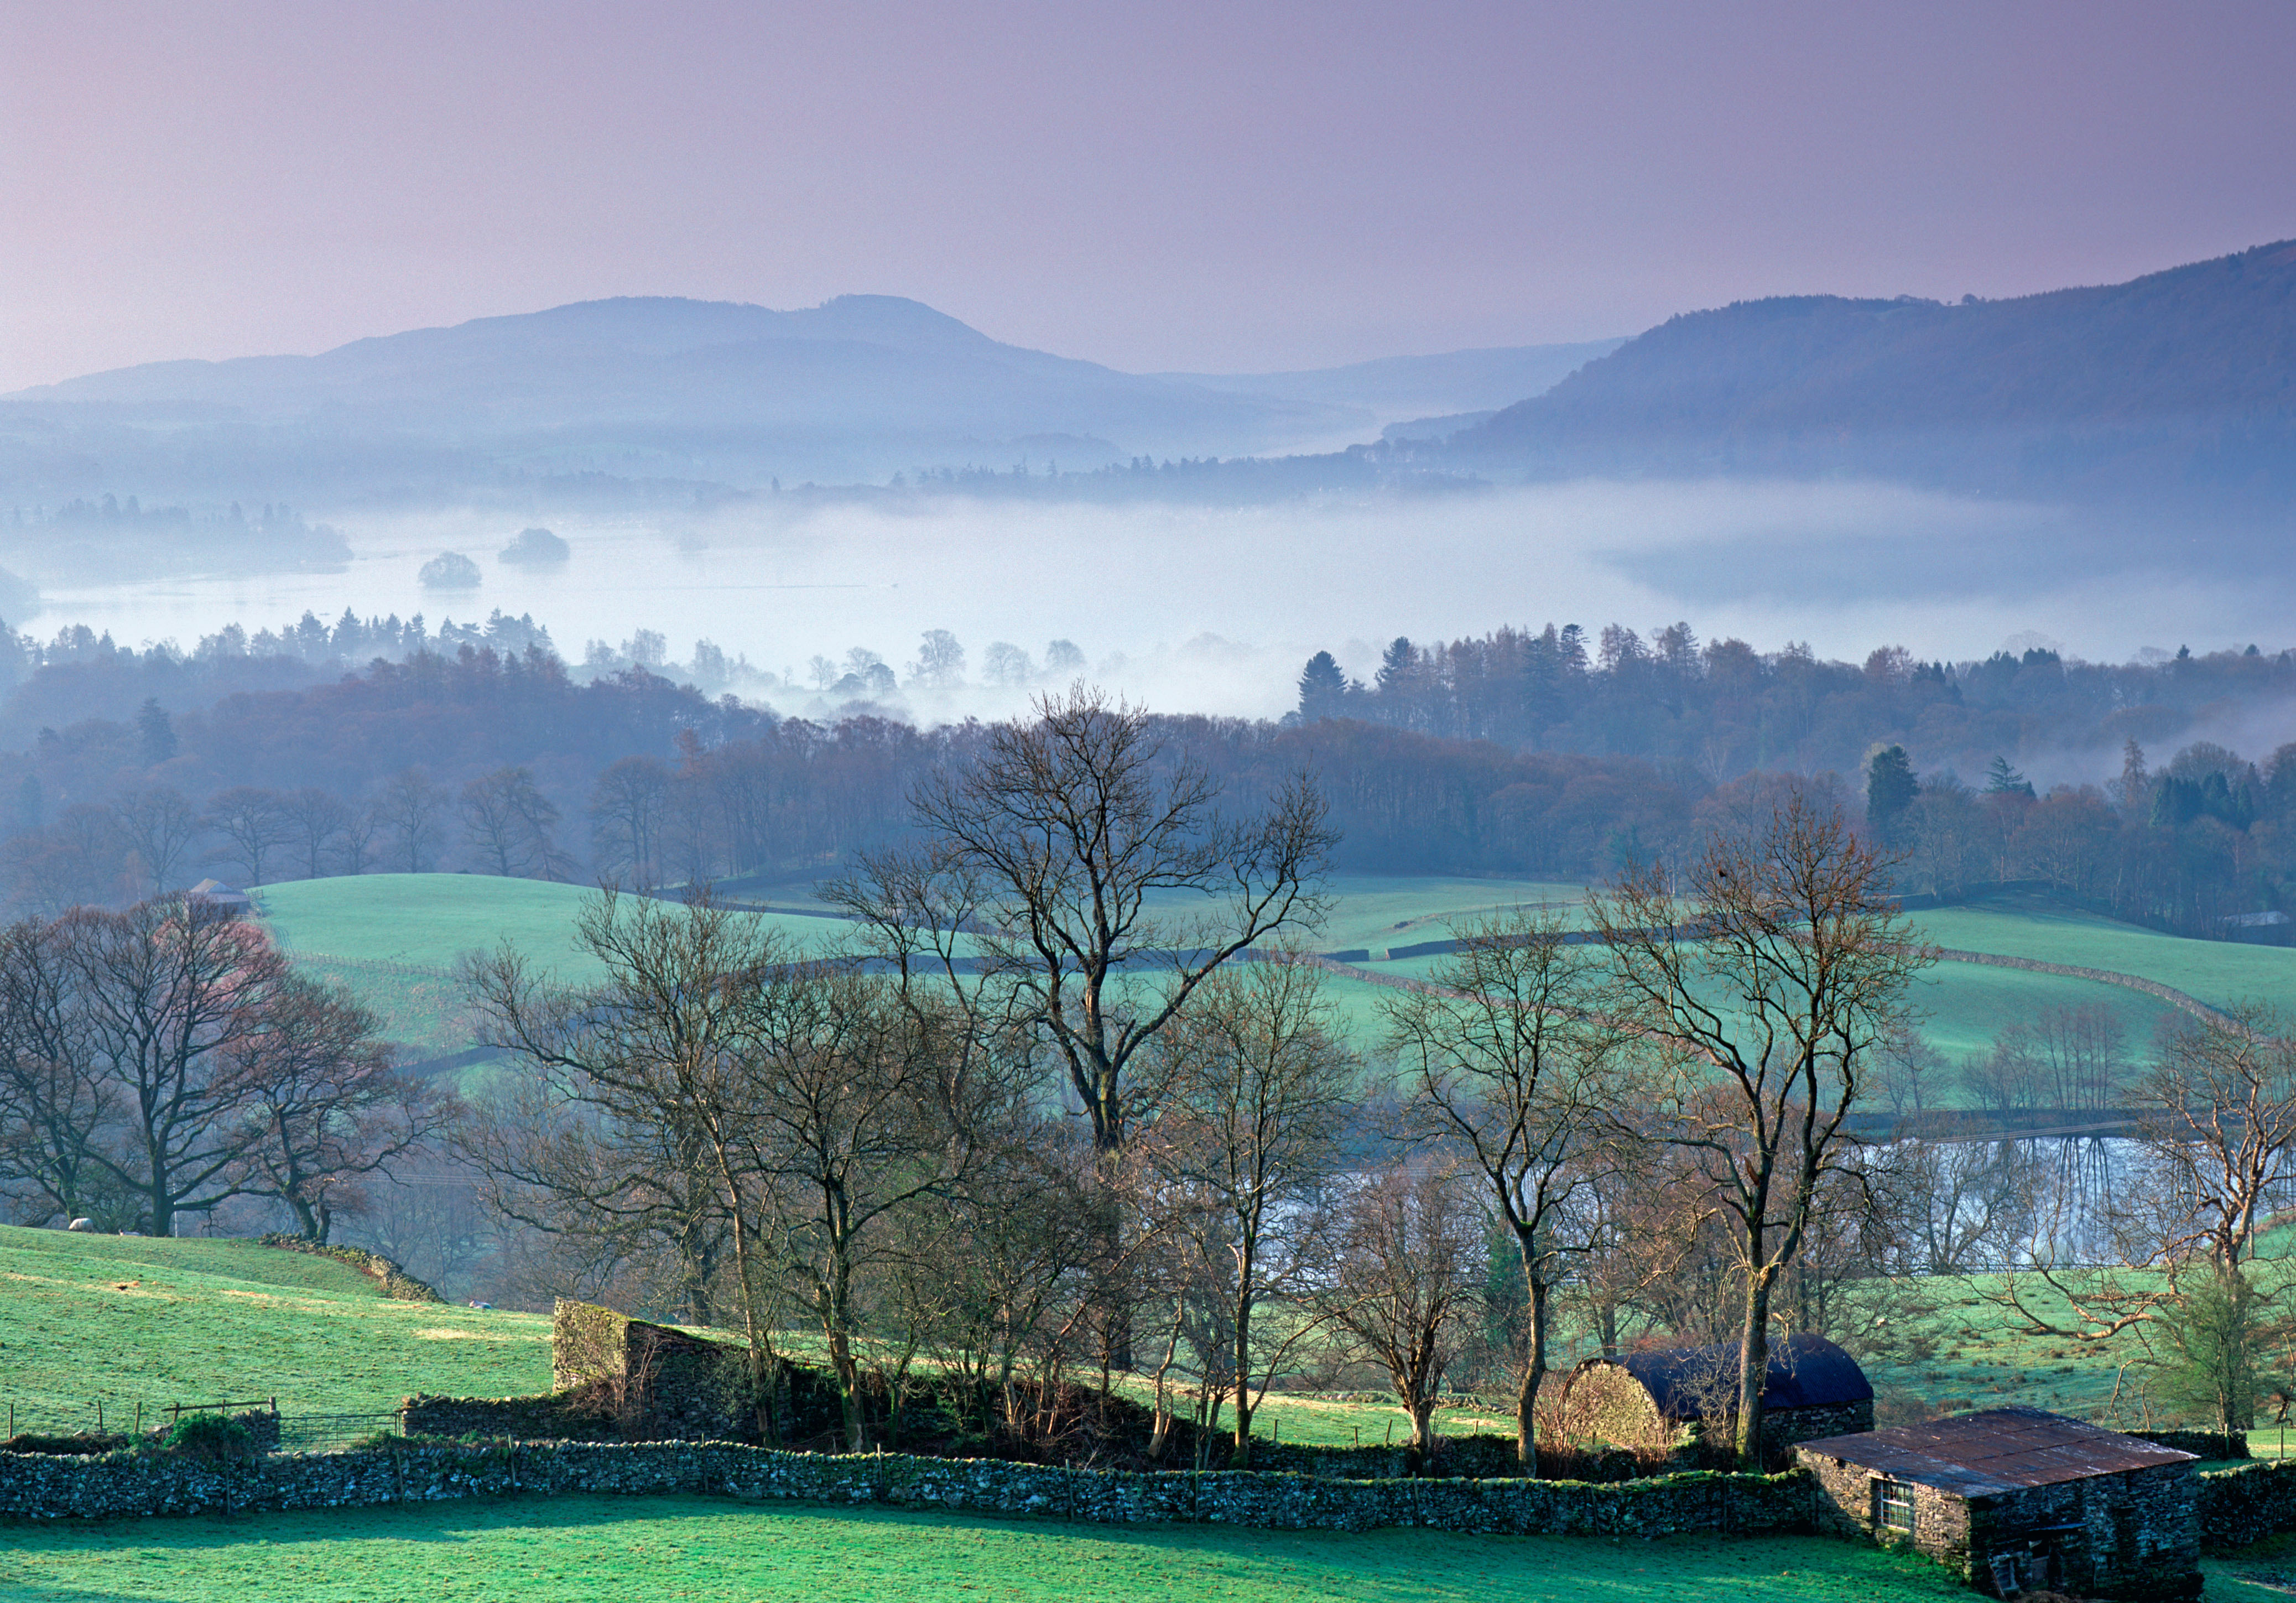 Looking South over Lake Windermere from Troutbeck. The lake is covered in mist caused by a temperature inversion common in Spring and Autumn.